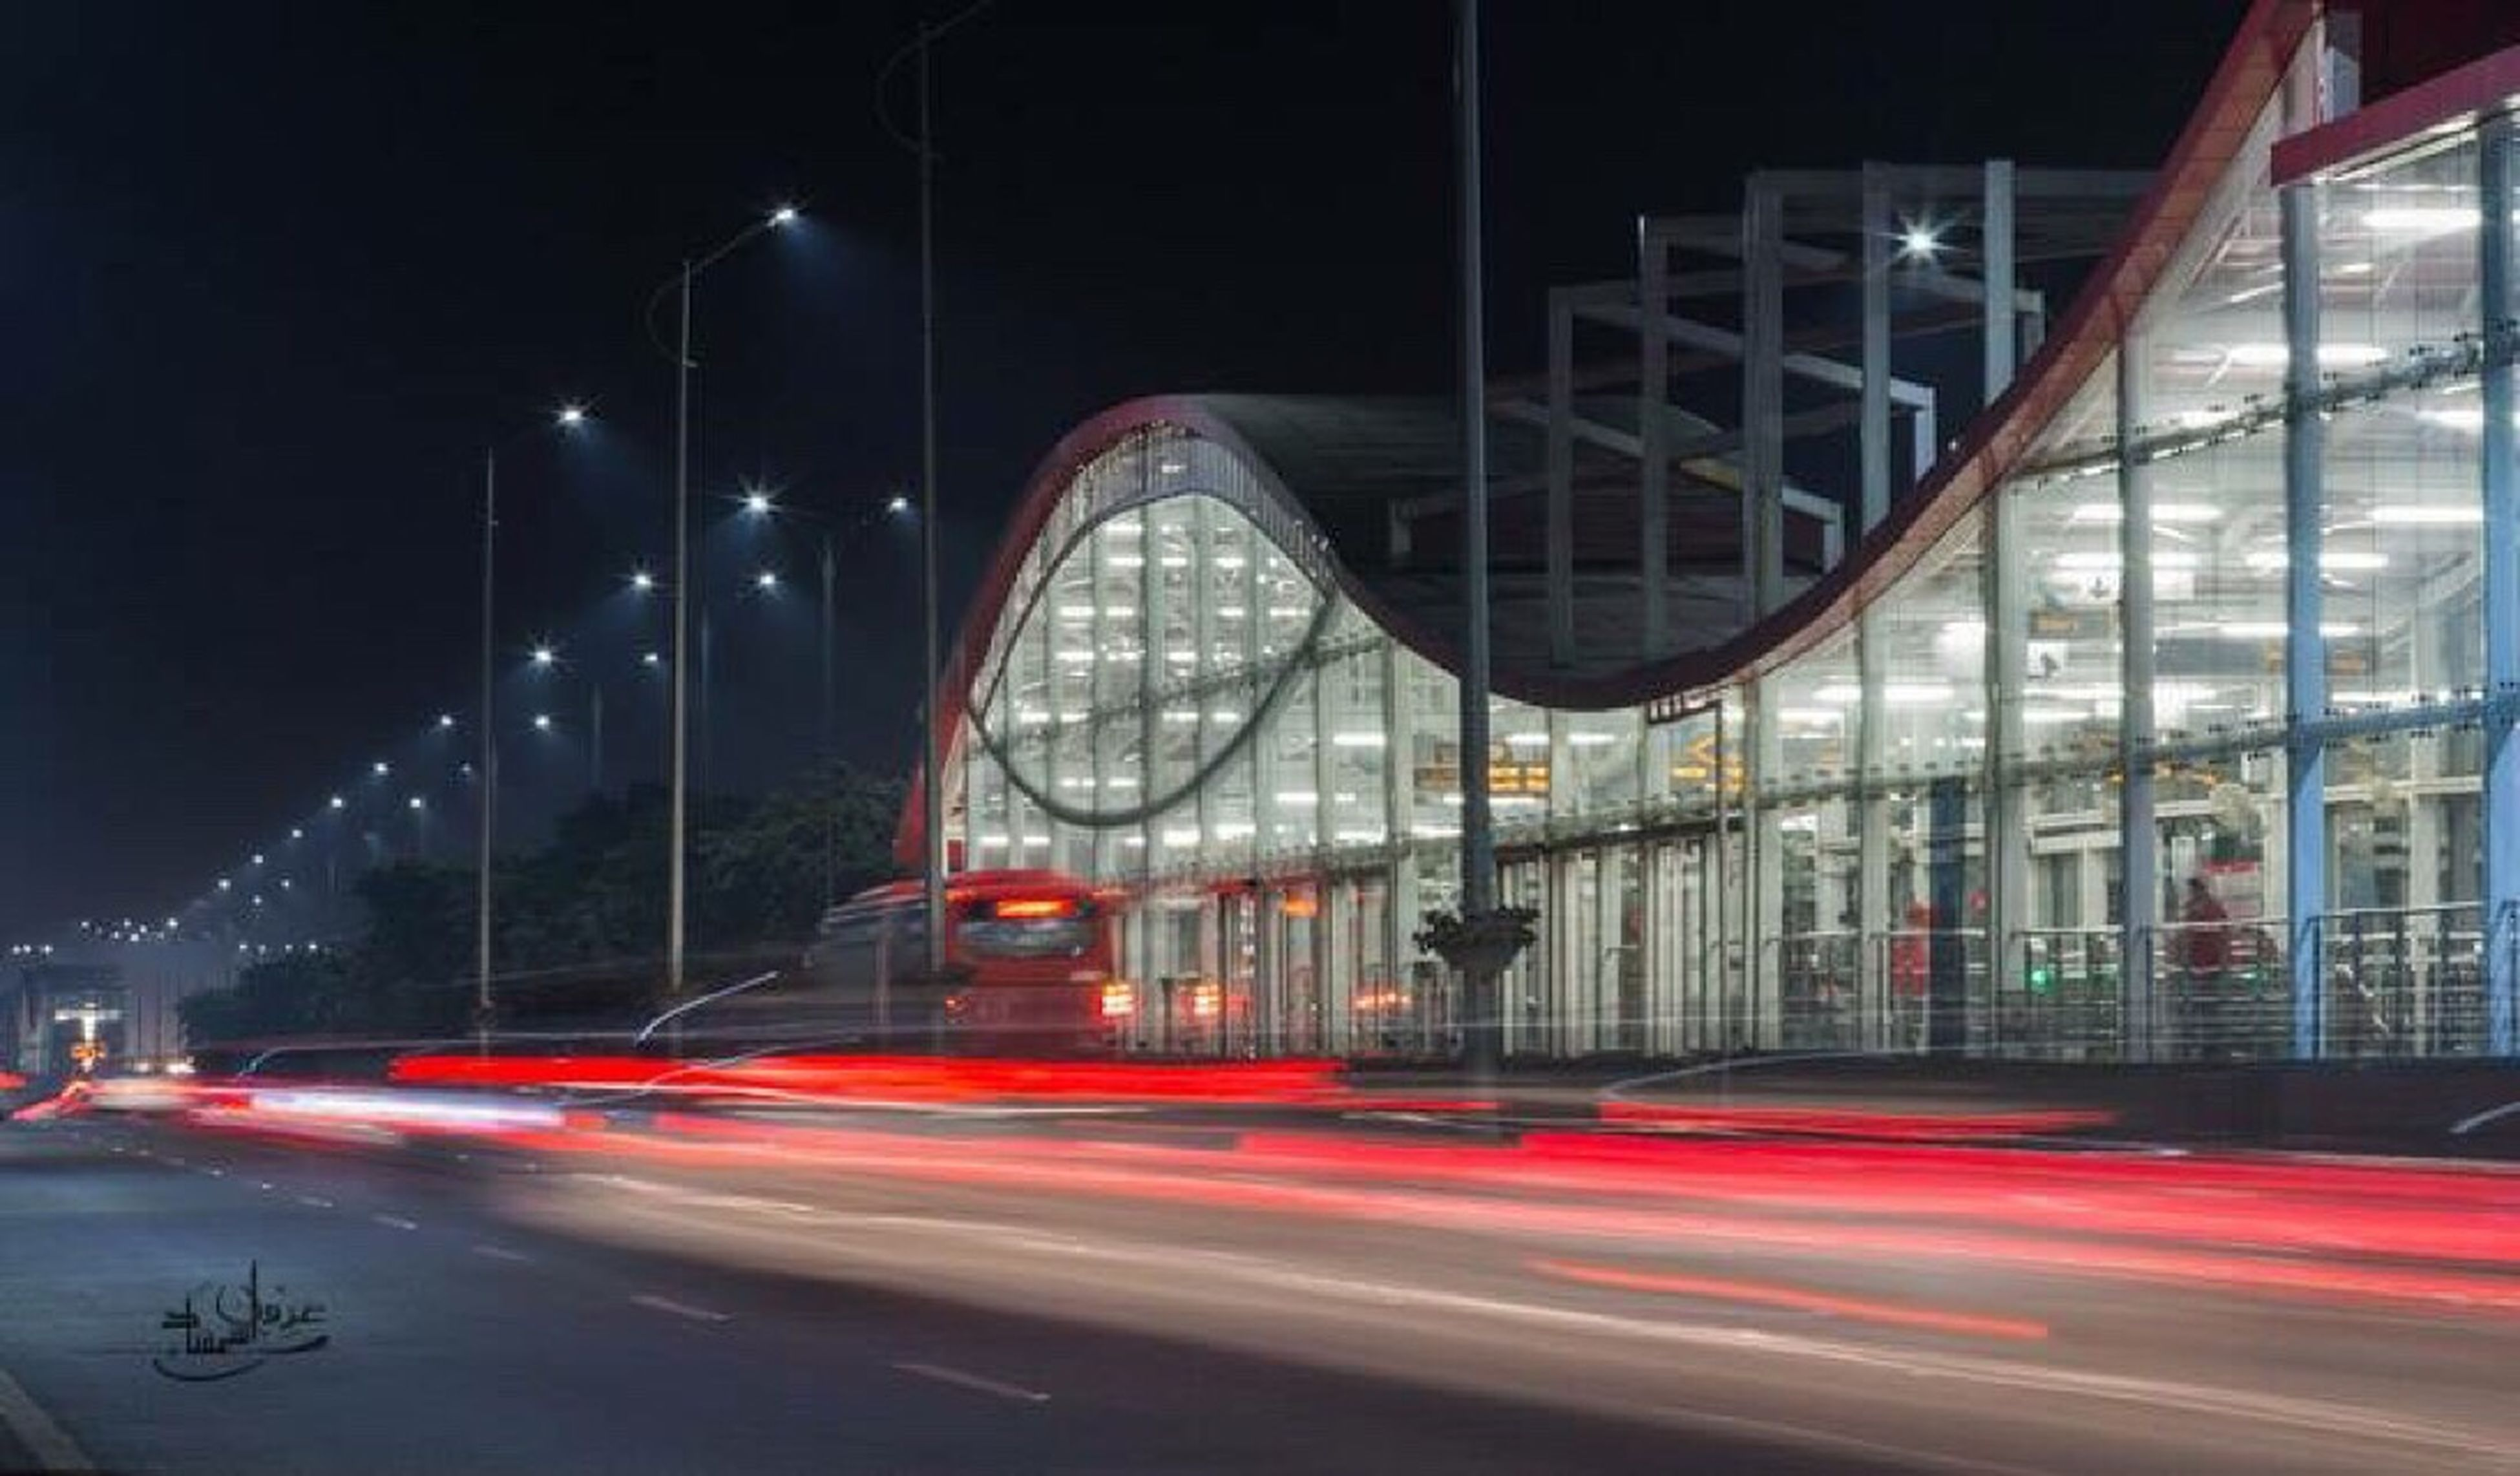 illuminated, night, long exposure, light trail, architecture, transportation, built structure, motion, speed, city, blurred motion, building exterior, road, travel destinations, travel, city life, famous place, street, on the move, red